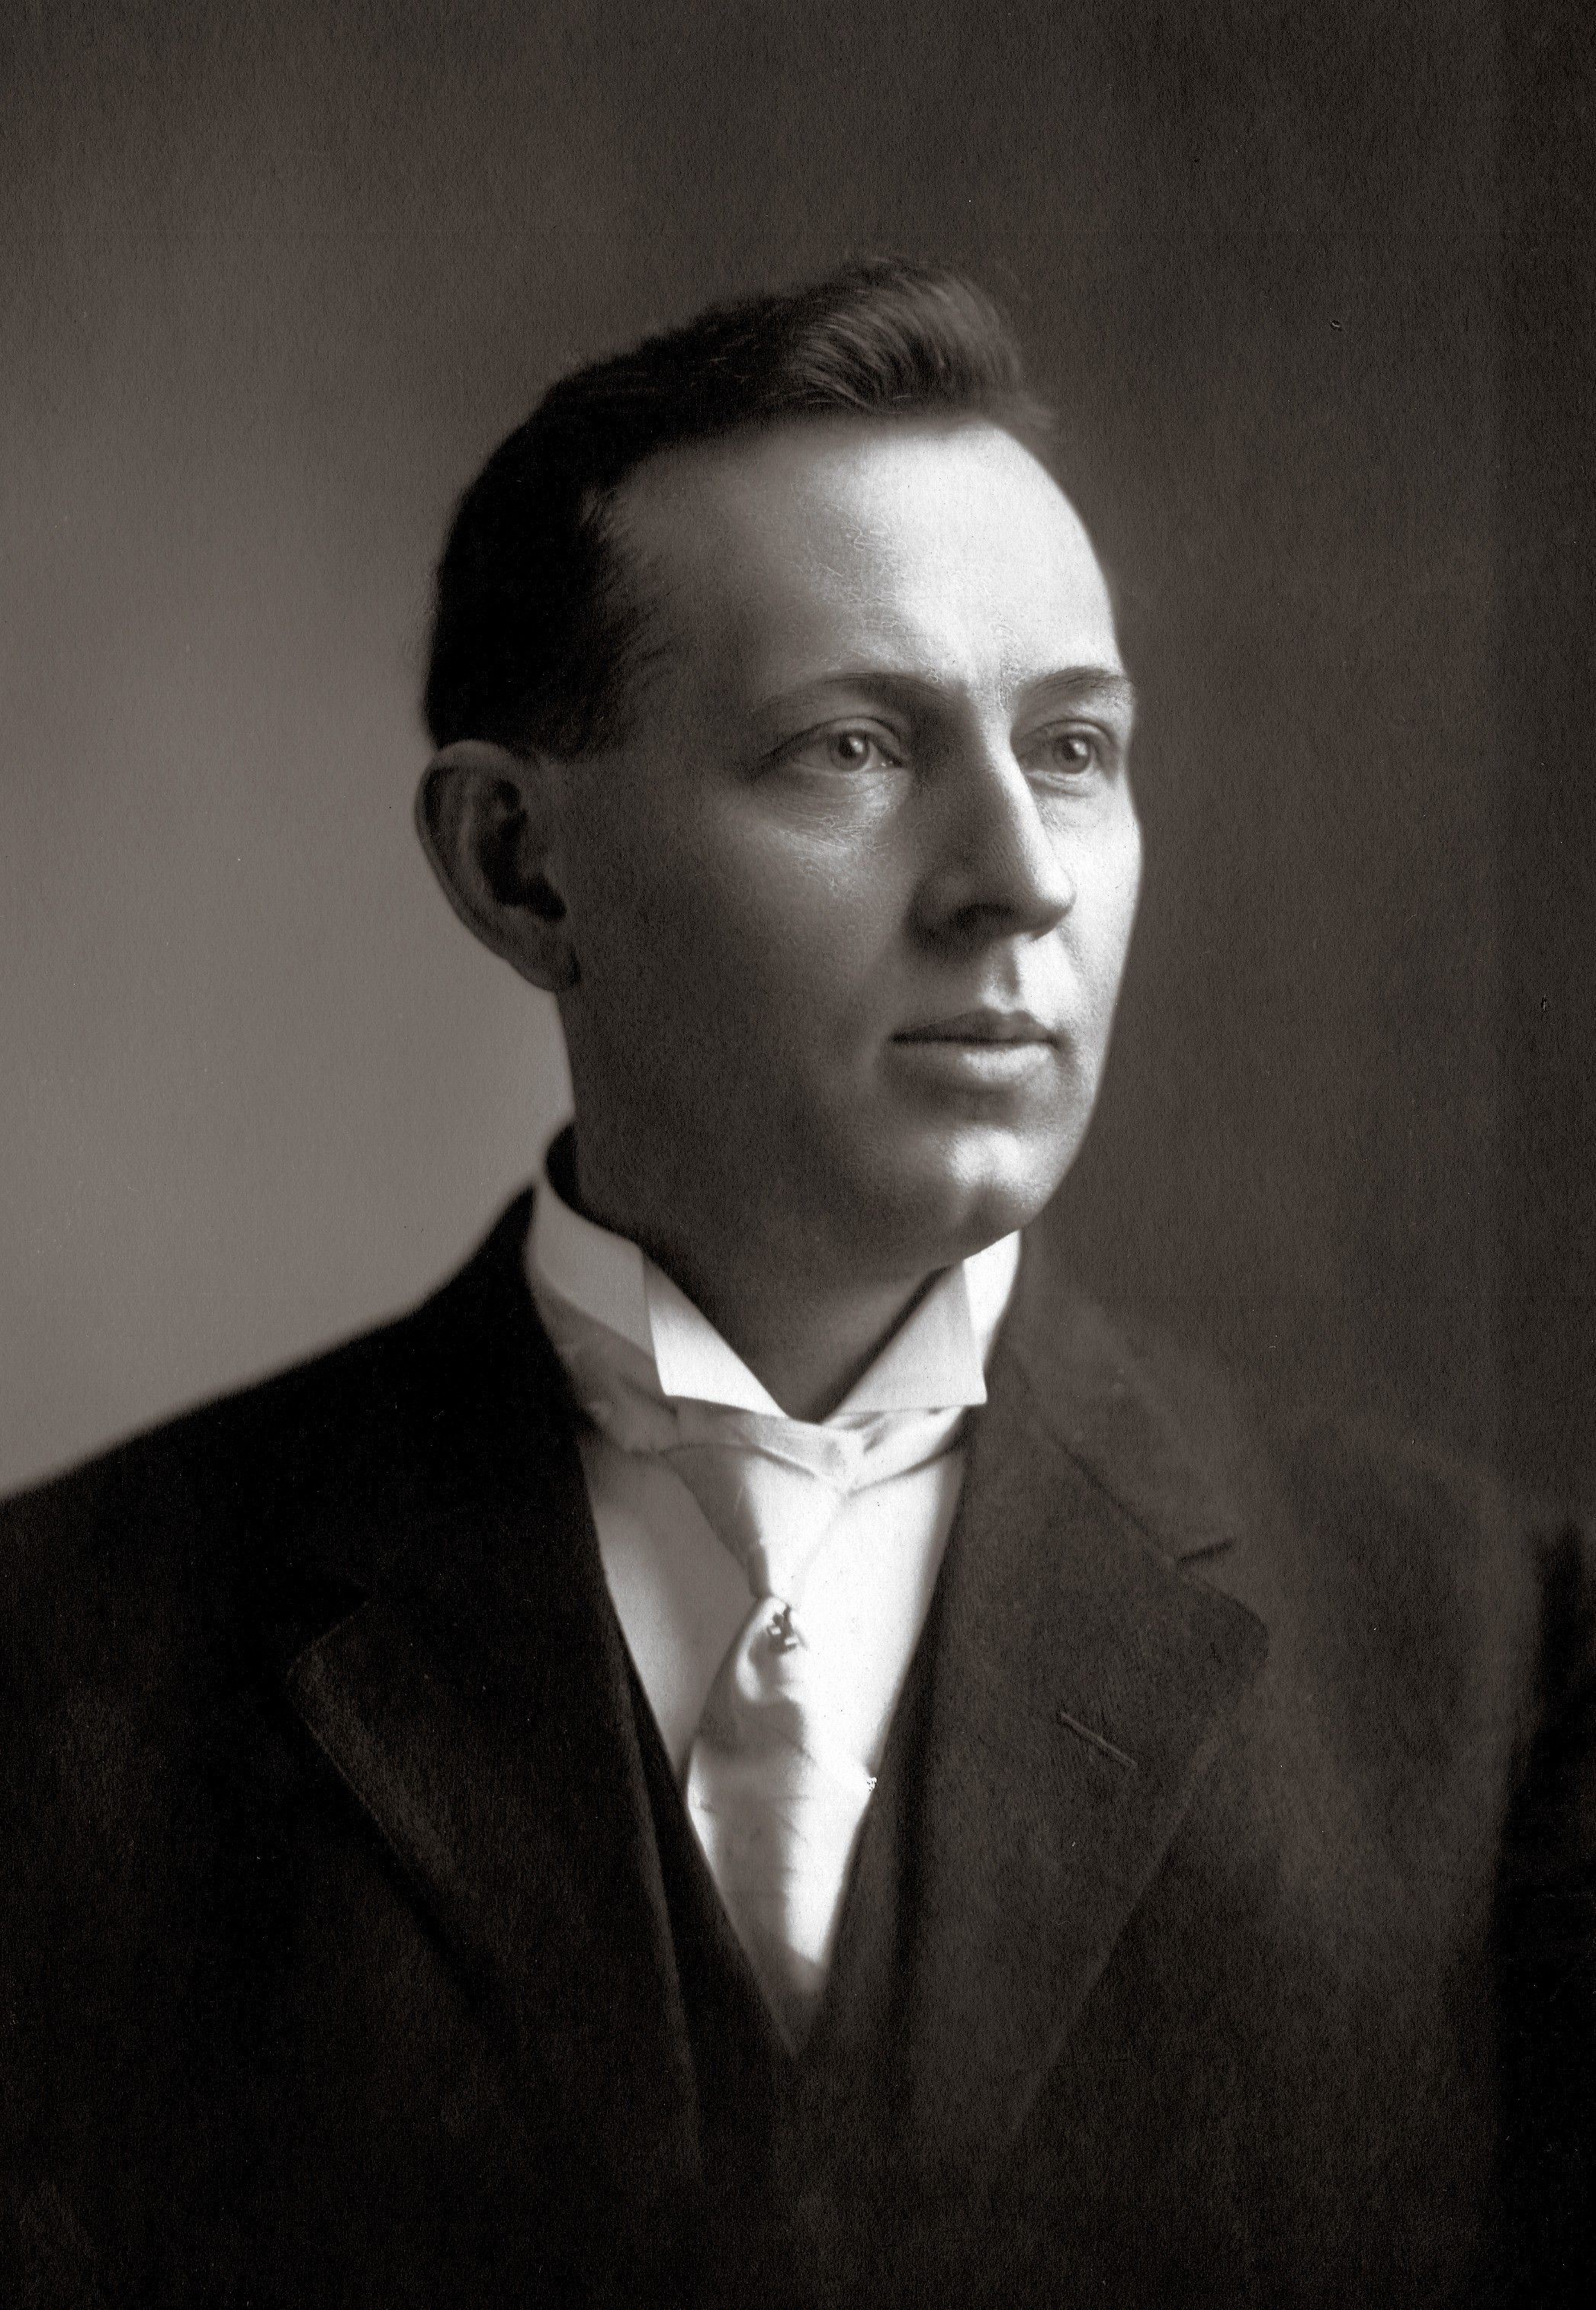 Elder Joseph Fielding Smith shortly after being ordained an Apostle in 1910. Teachings of Presidents of the Church: Joseph Fielding Smith (2013), 262